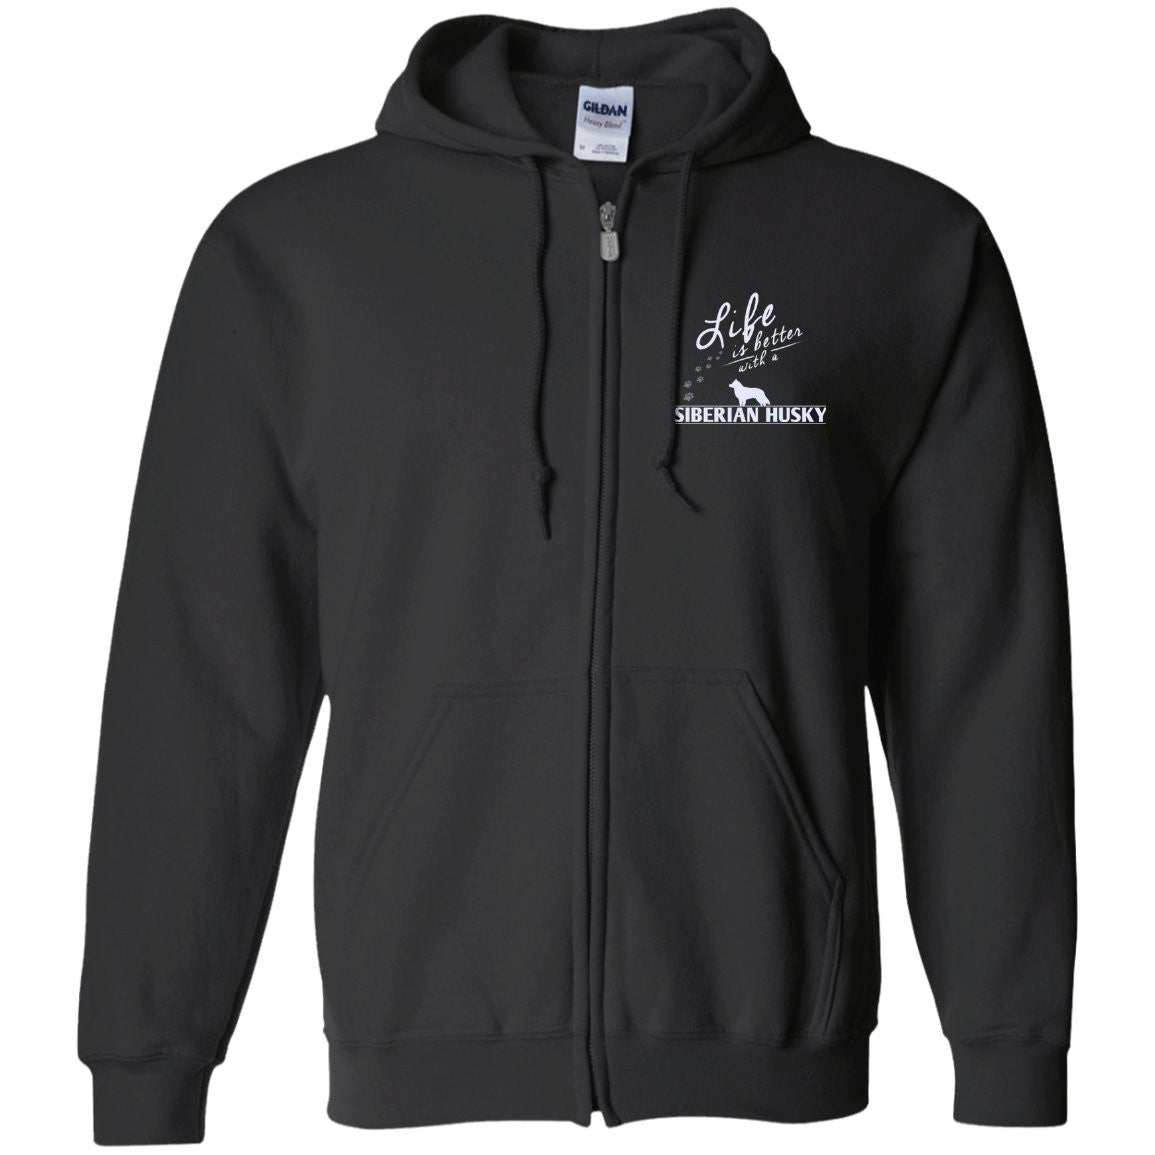 Siberian Husky - Life Is Better With A Siberian Husky - Embroidered Zip Up Hooded Sweatshirt